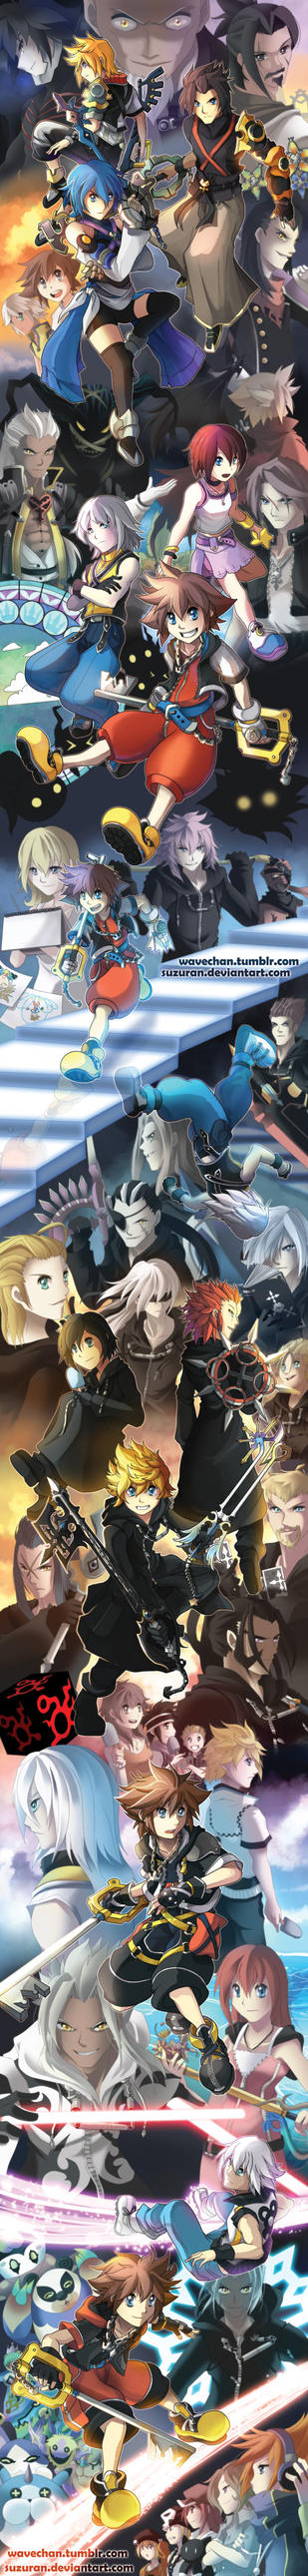 SUPER LONG Kingdom Hearts tribute by suzuran